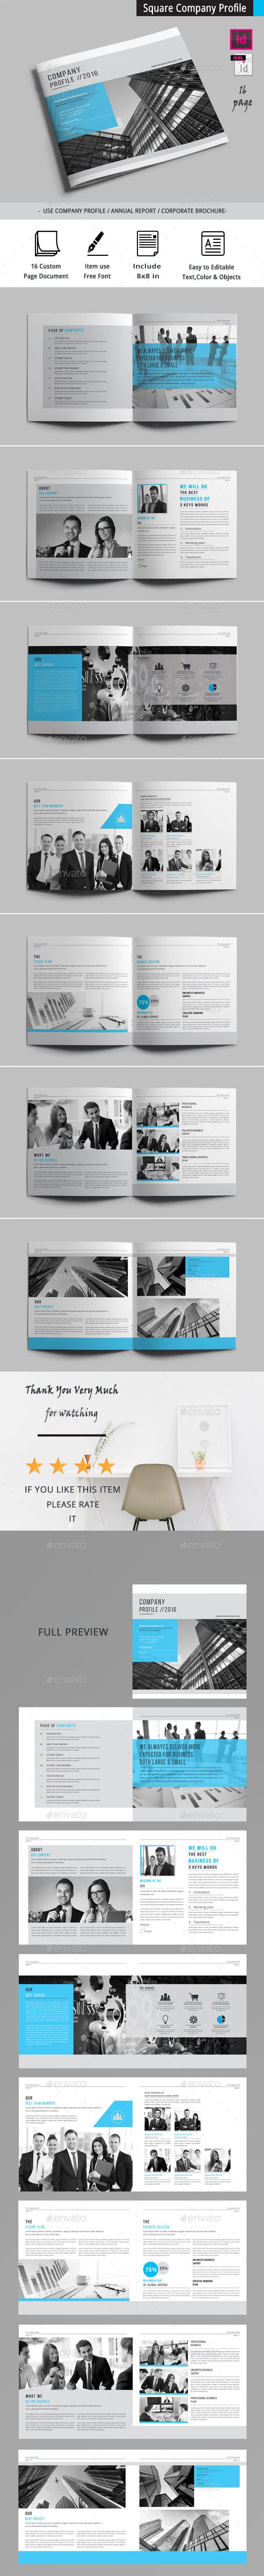 Square Company Profile Brochure Template InDesign INDD - 16 Pages